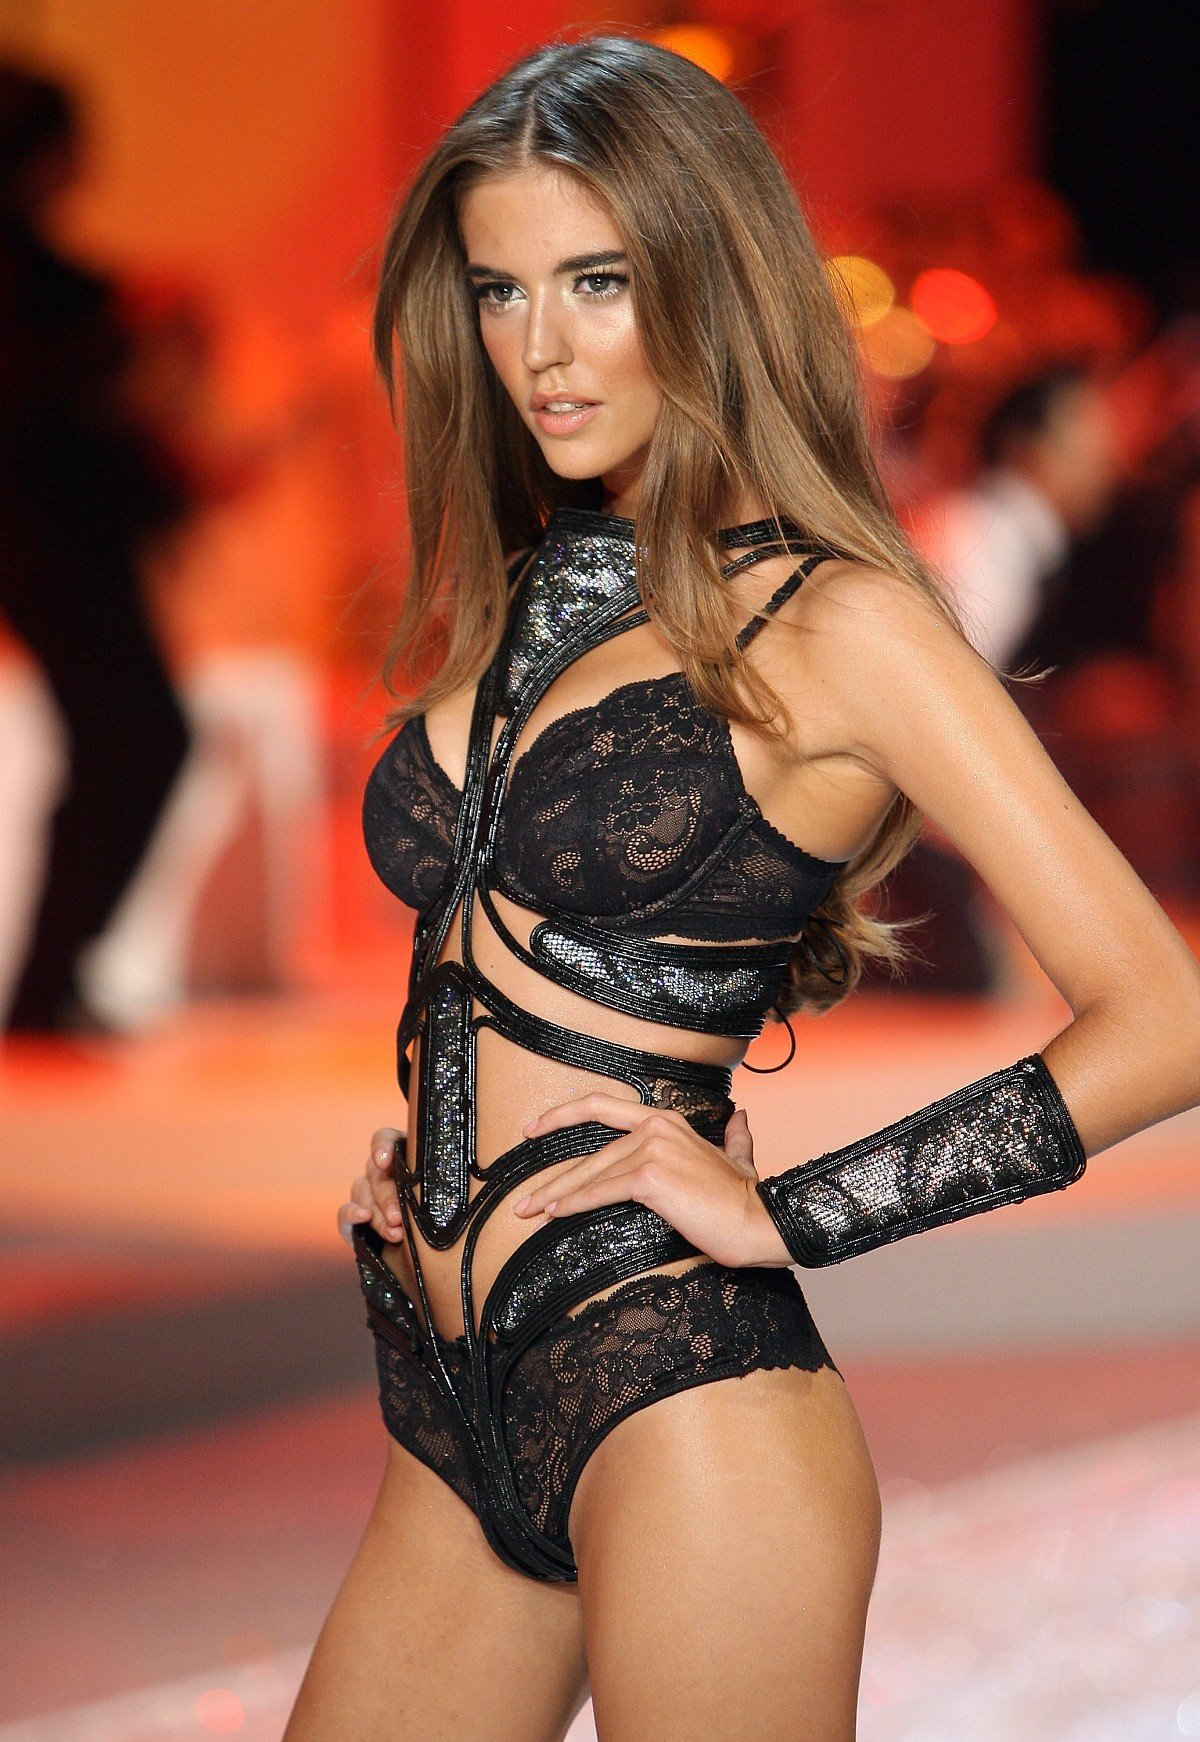 Victoria secret fashion show photo gallery Death Notices m